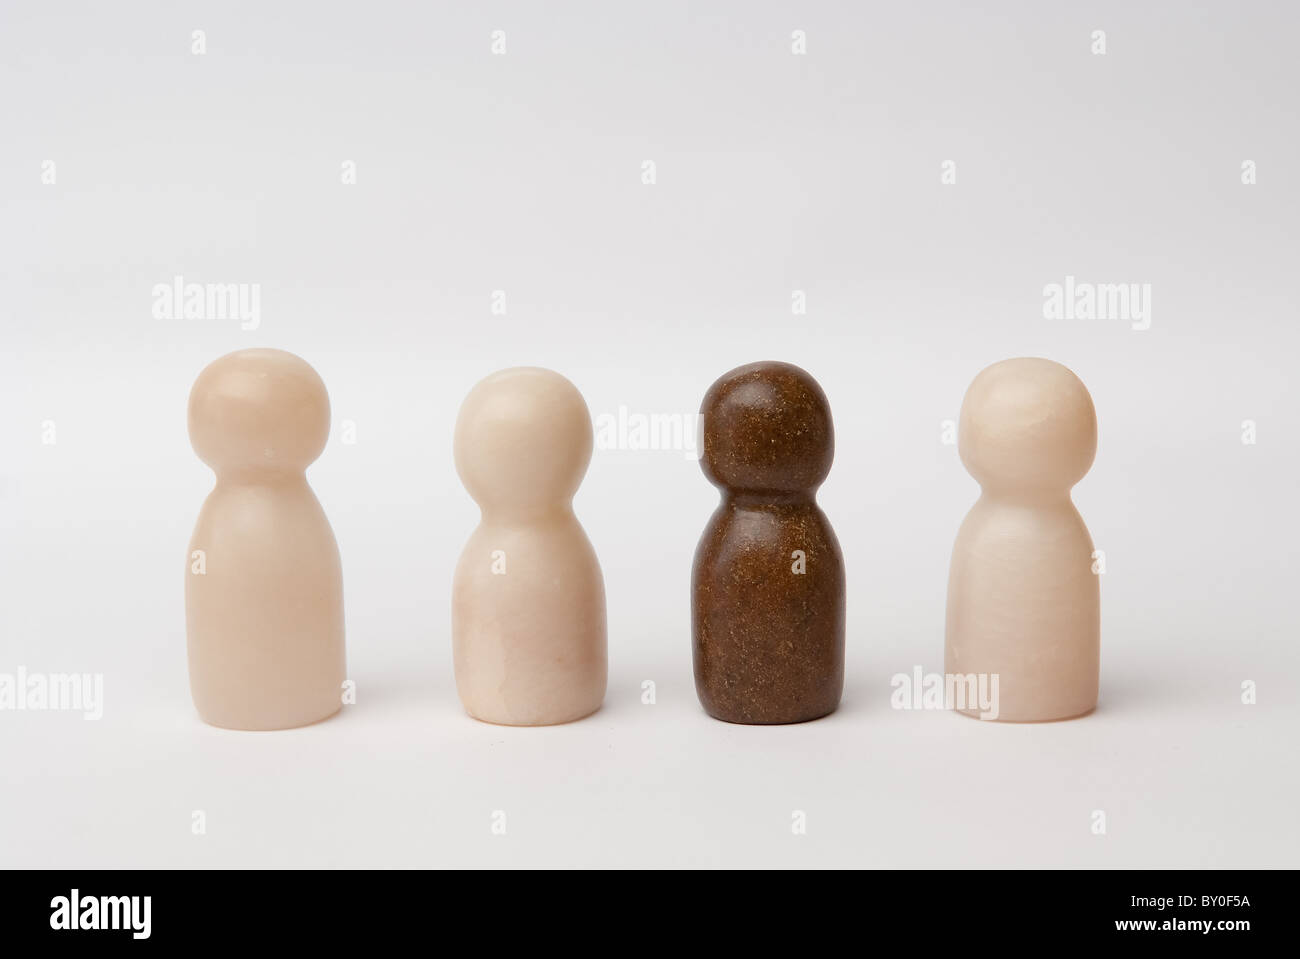 3 white and 1 brown figure - Stock Image